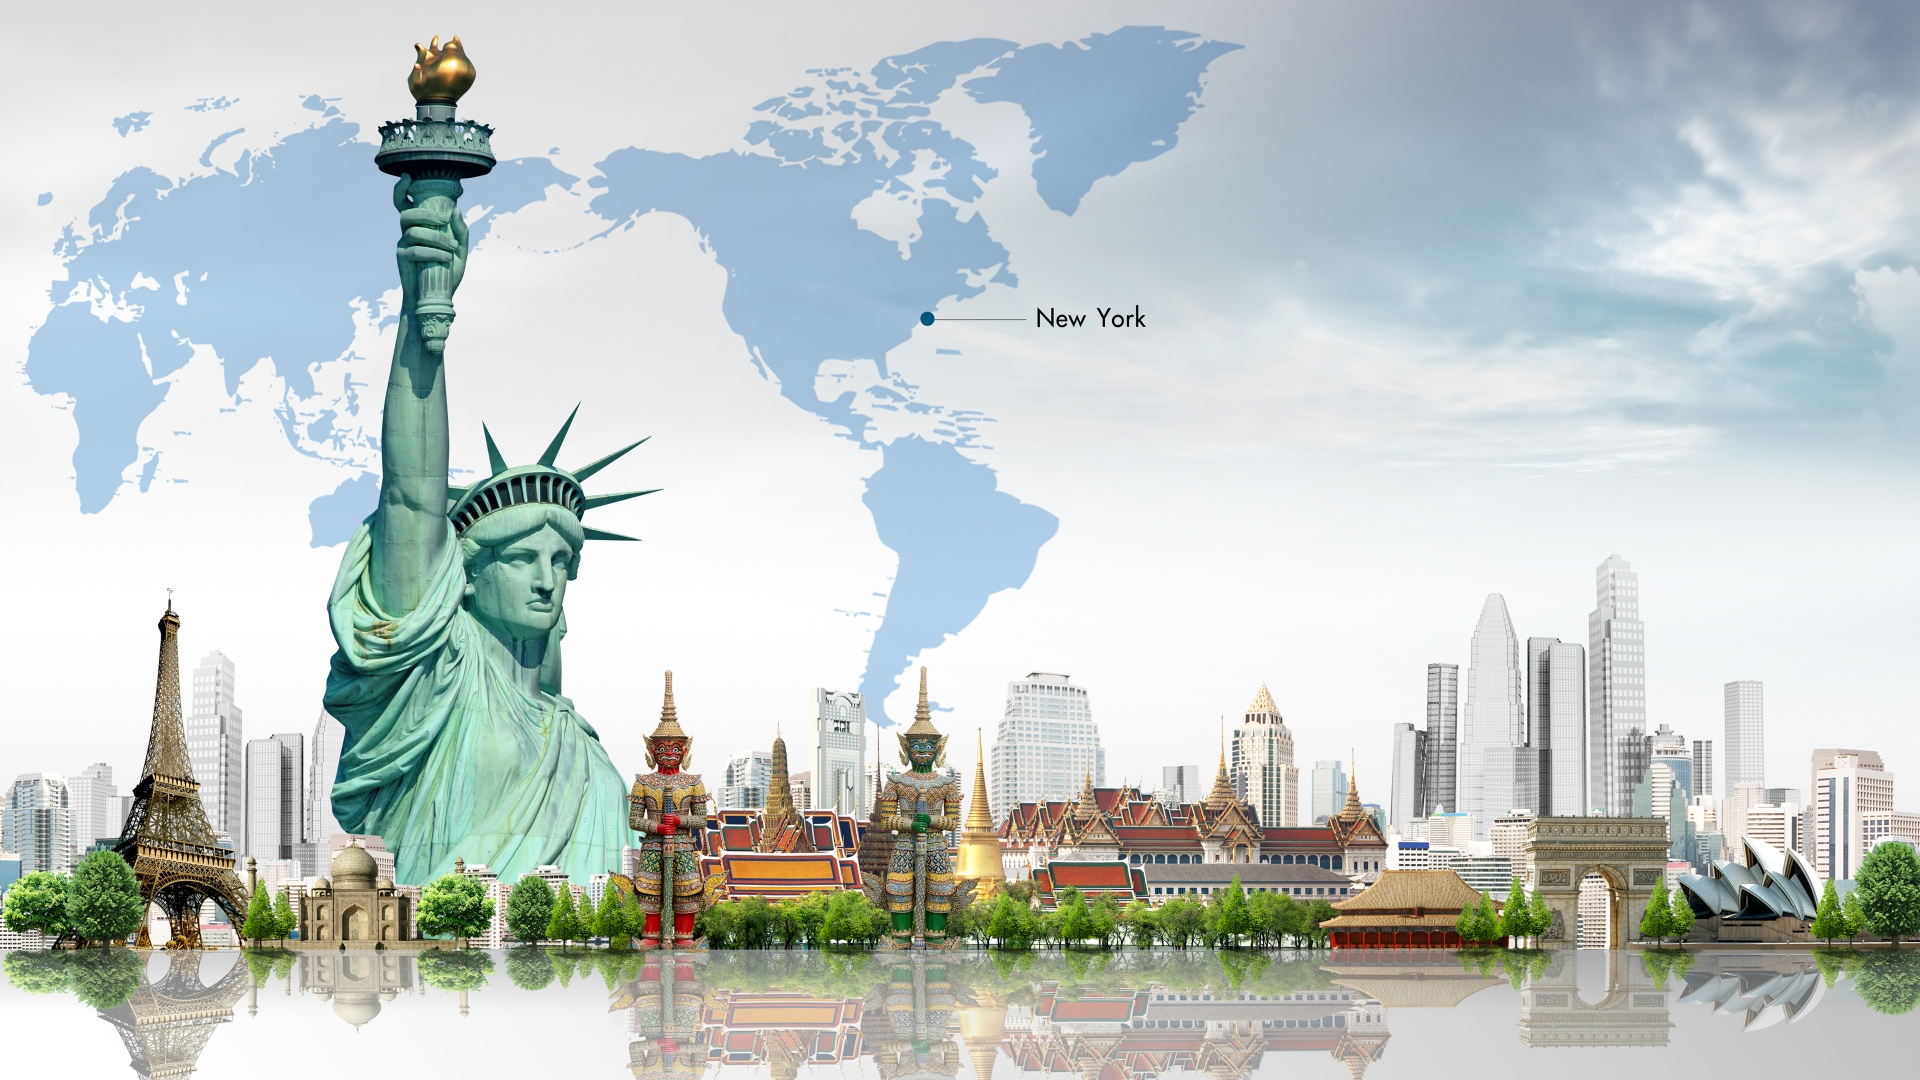 Free Download Statue Of Liberty Wallpaper Widescreen Statue Of